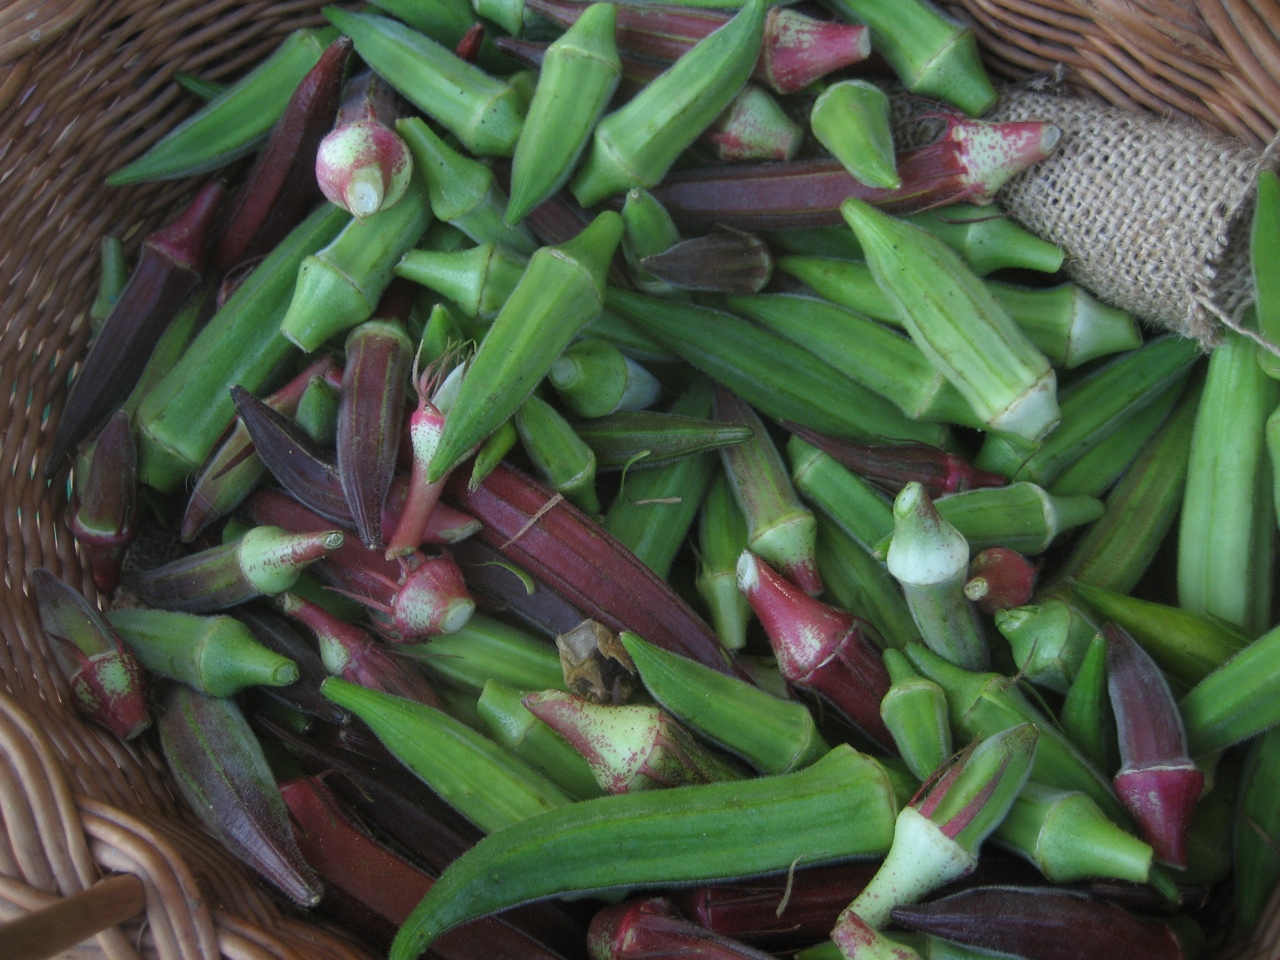 Mixed Okra